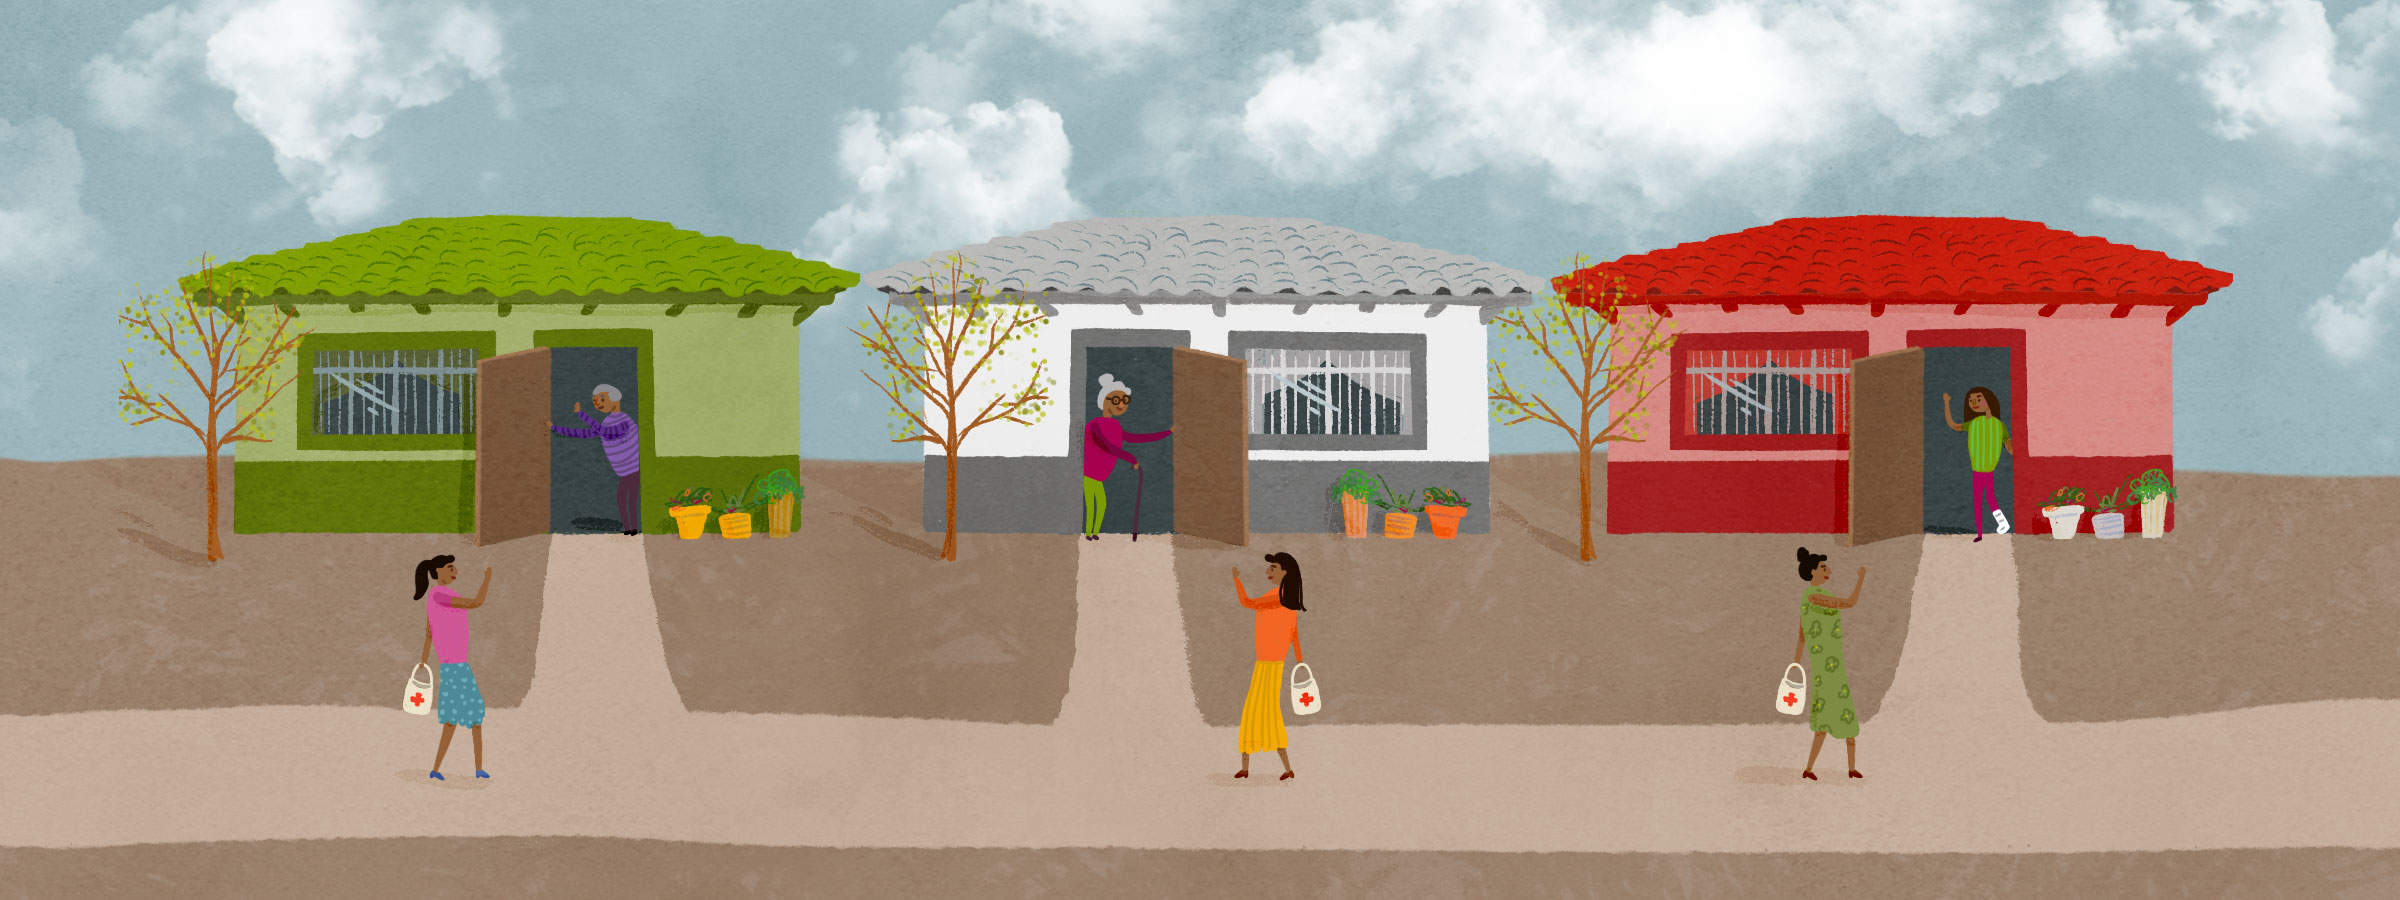 image of three small houses in a small town in Mexico with a lay health worker walking from one to another